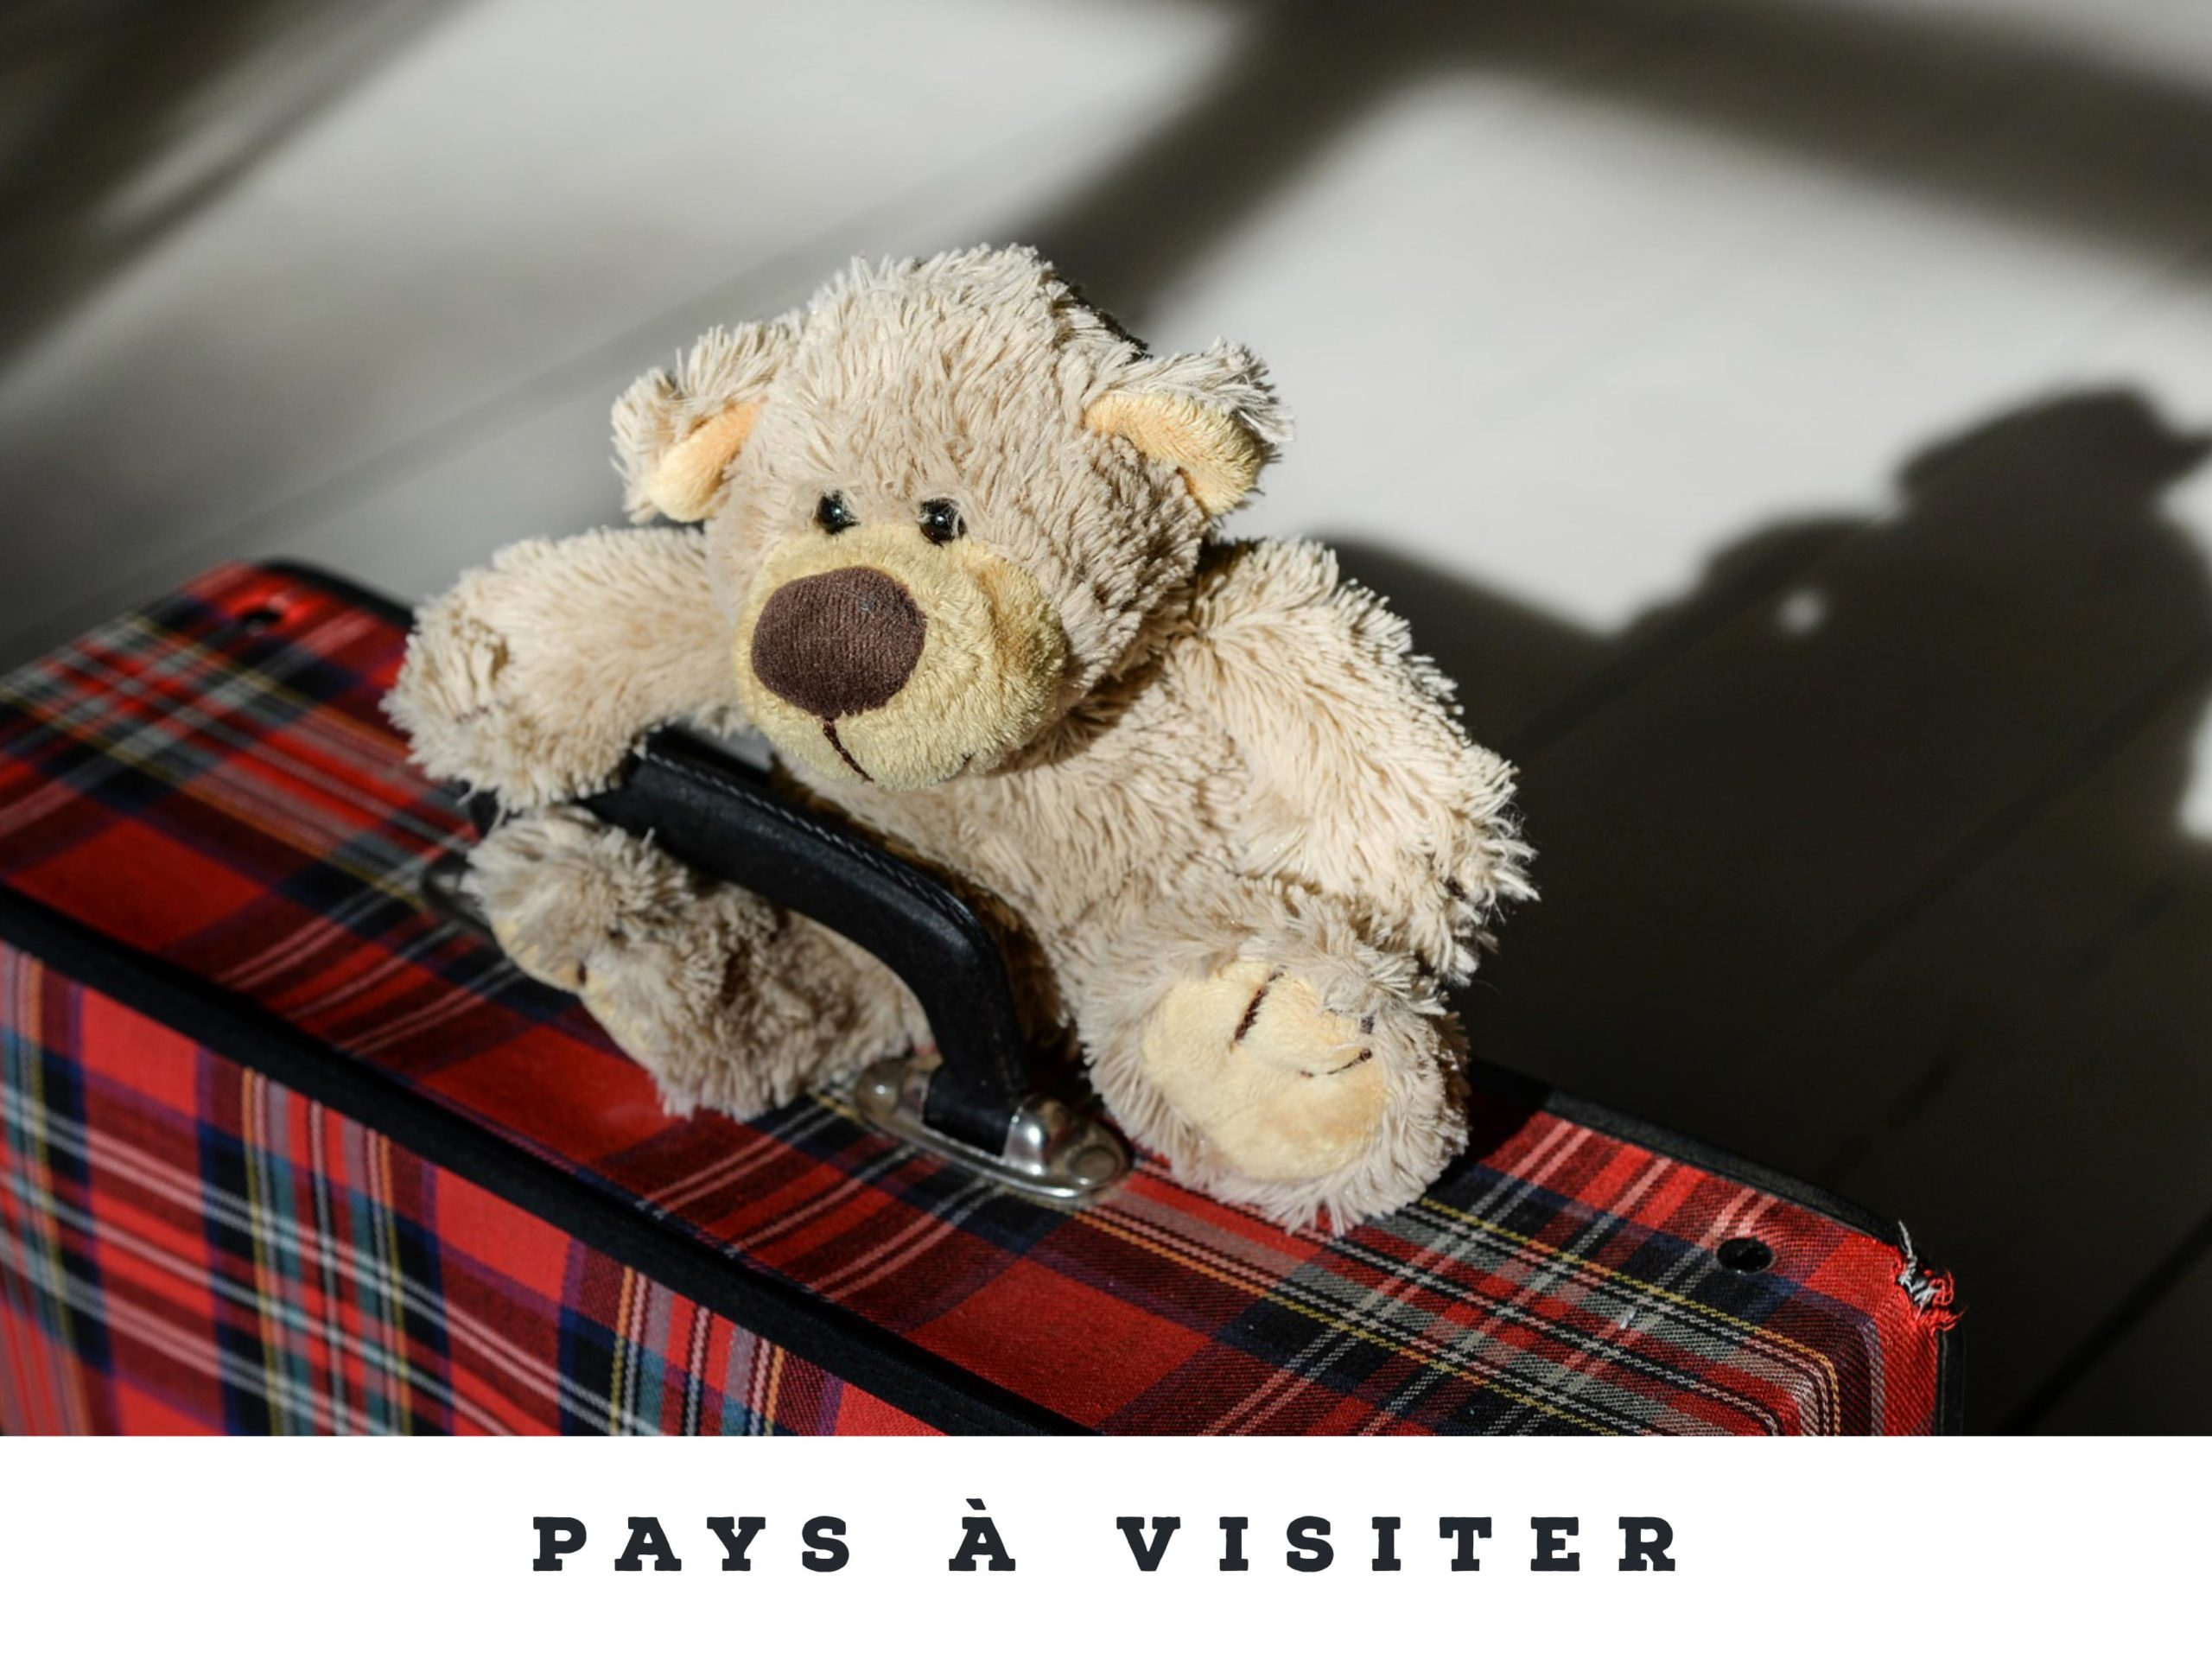 Pays a visiter